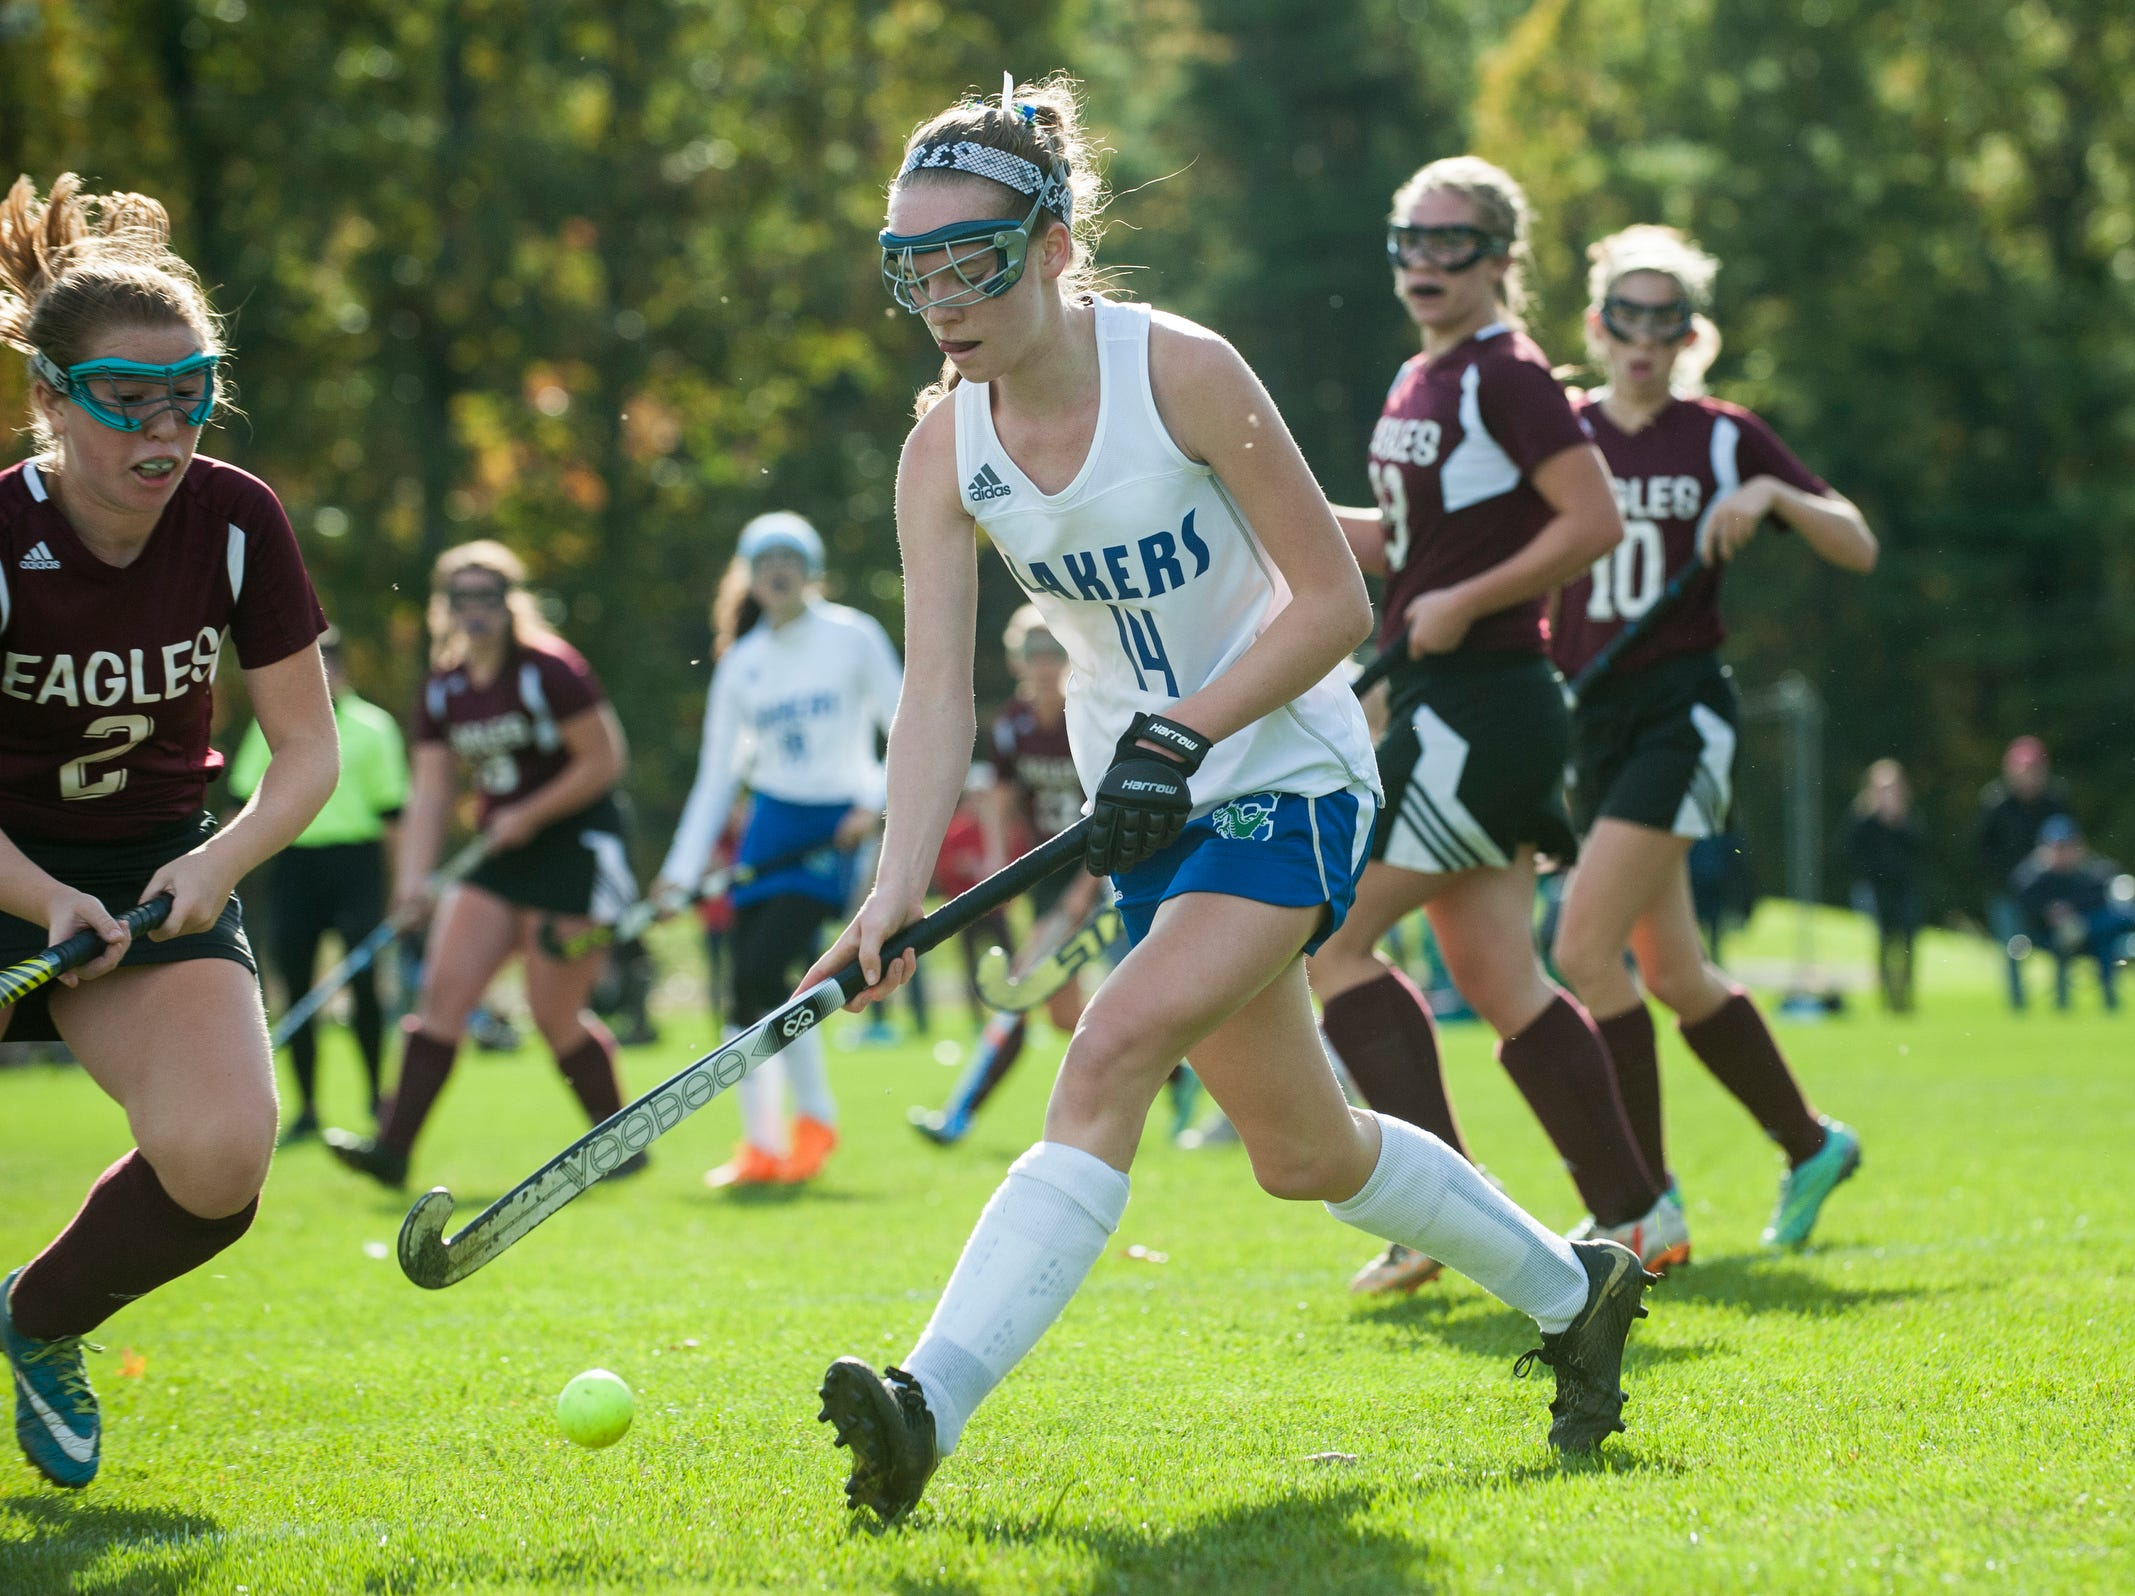 Colchester's Patra Bajuk (14) plays the ball during the field hockey game between Mount Abraham and Colchester at Colchester High School on Saturday morning October 20, 2018 in Colchester.